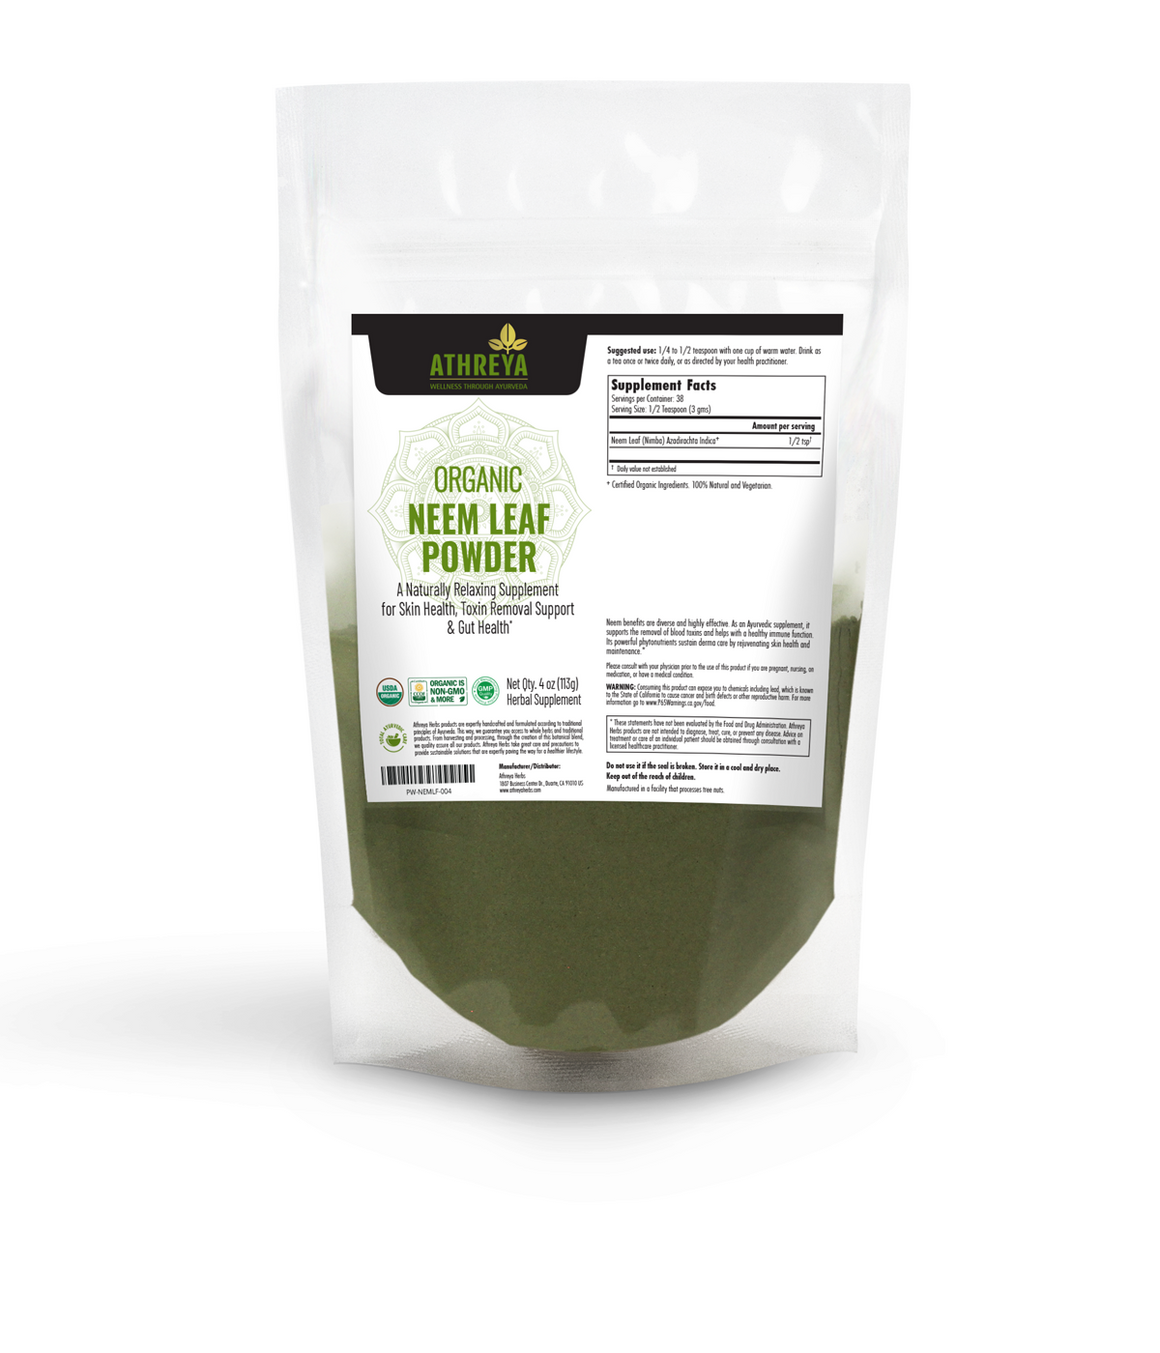 Organic Neem Leaf Powder